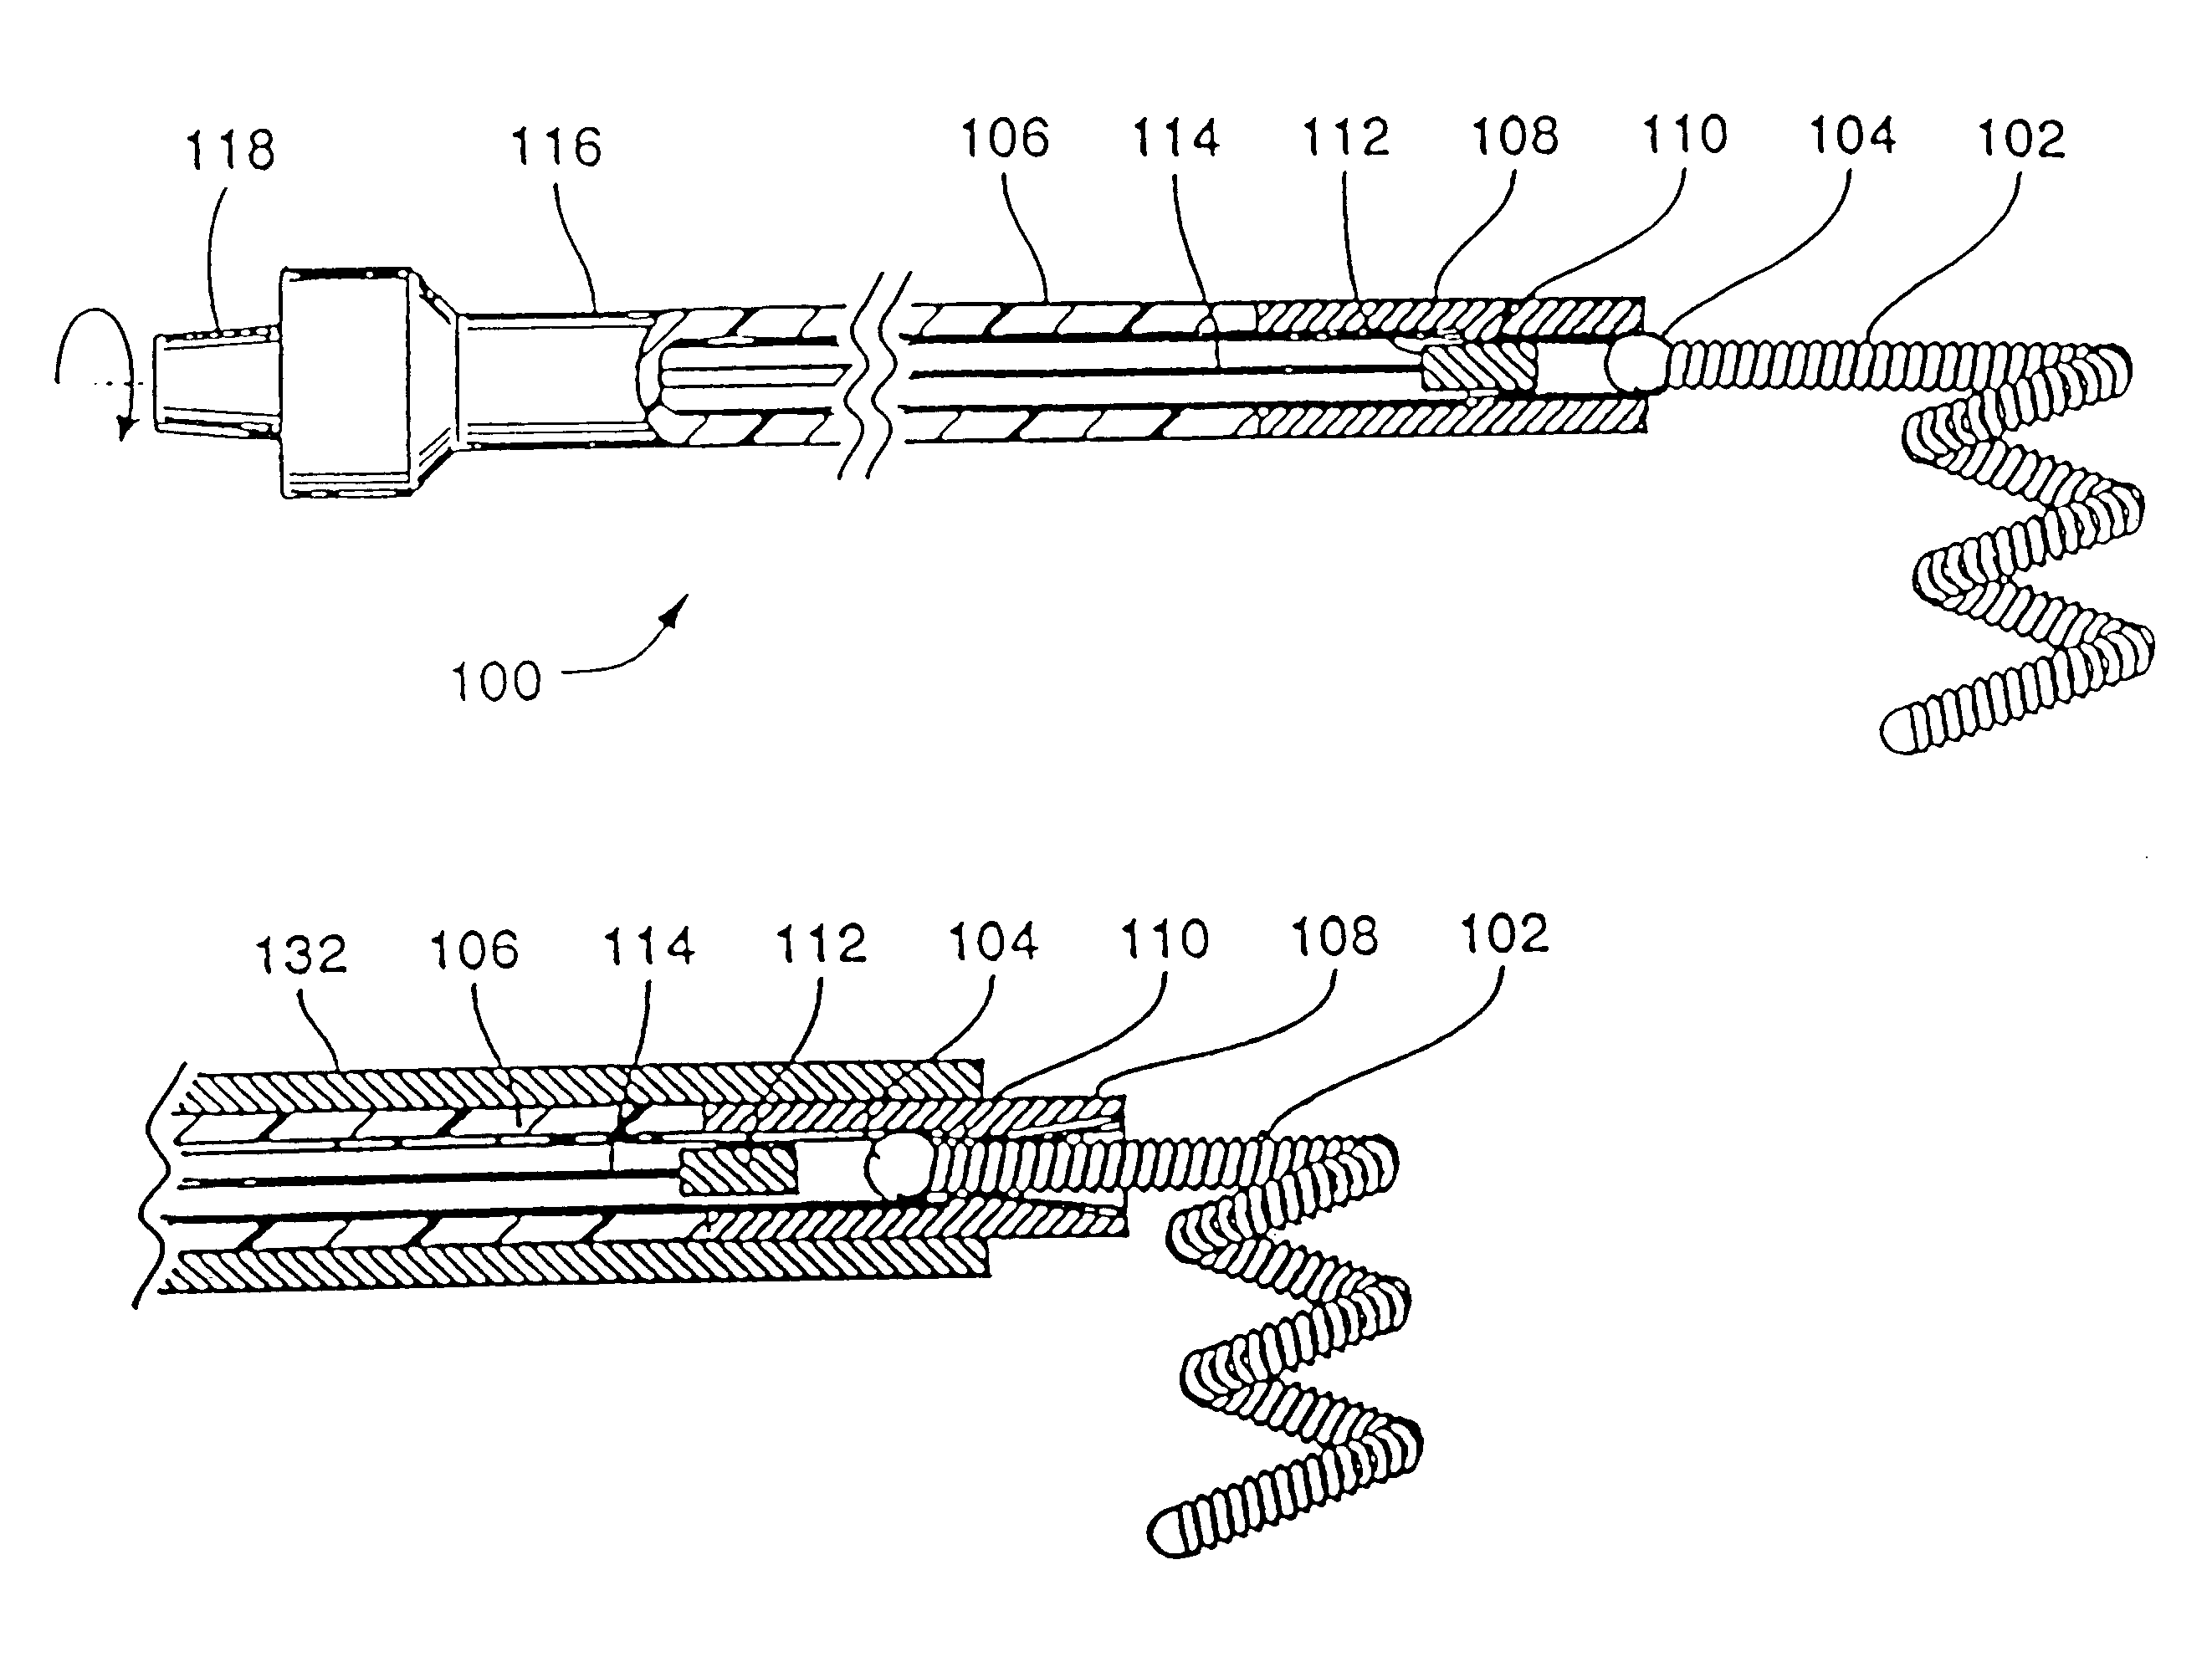 brevet us6190373 axially detachable embolic coil